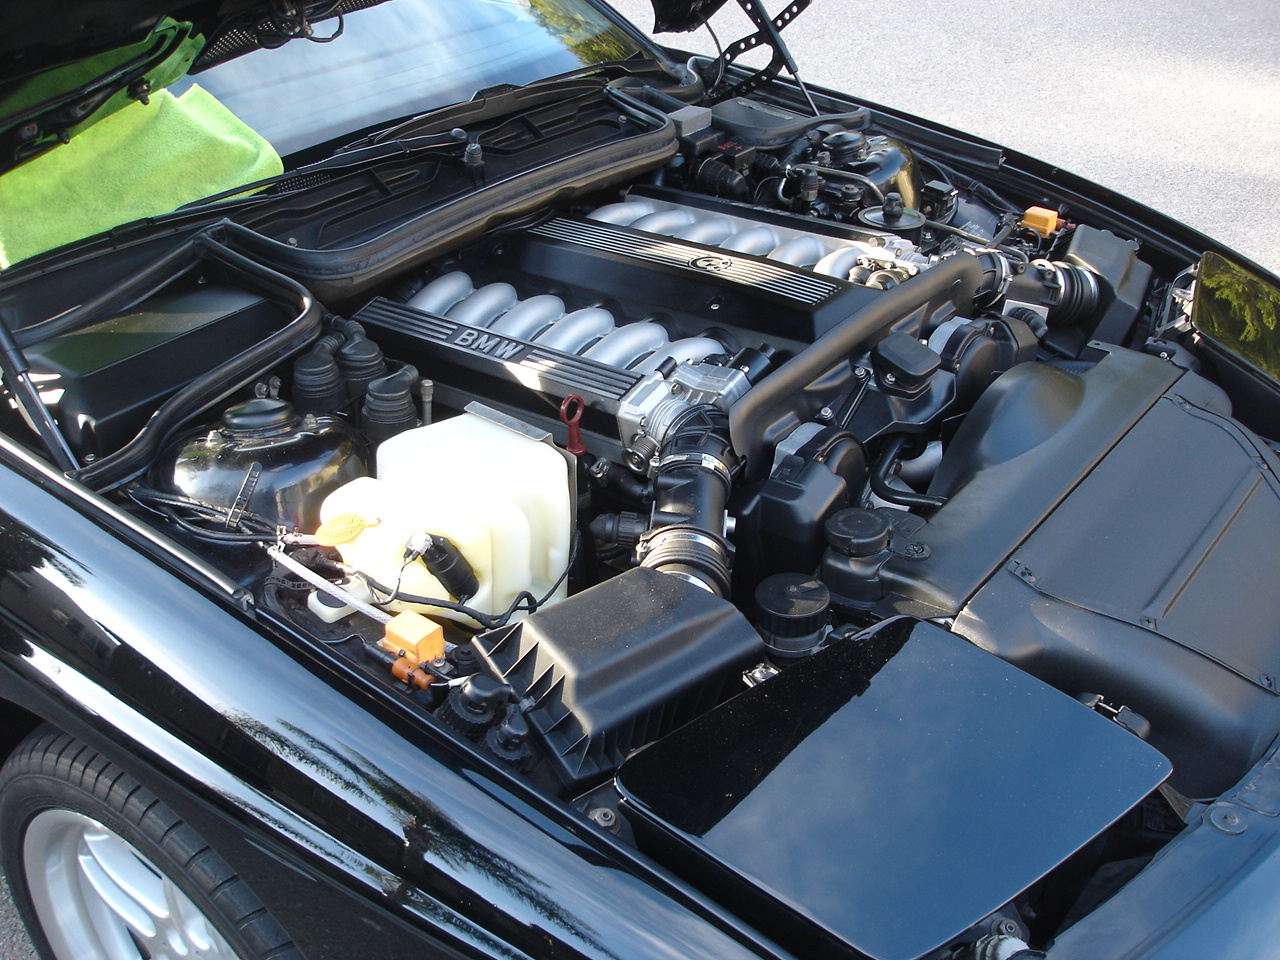 I Really Like The Looks Of Engine Bay Now